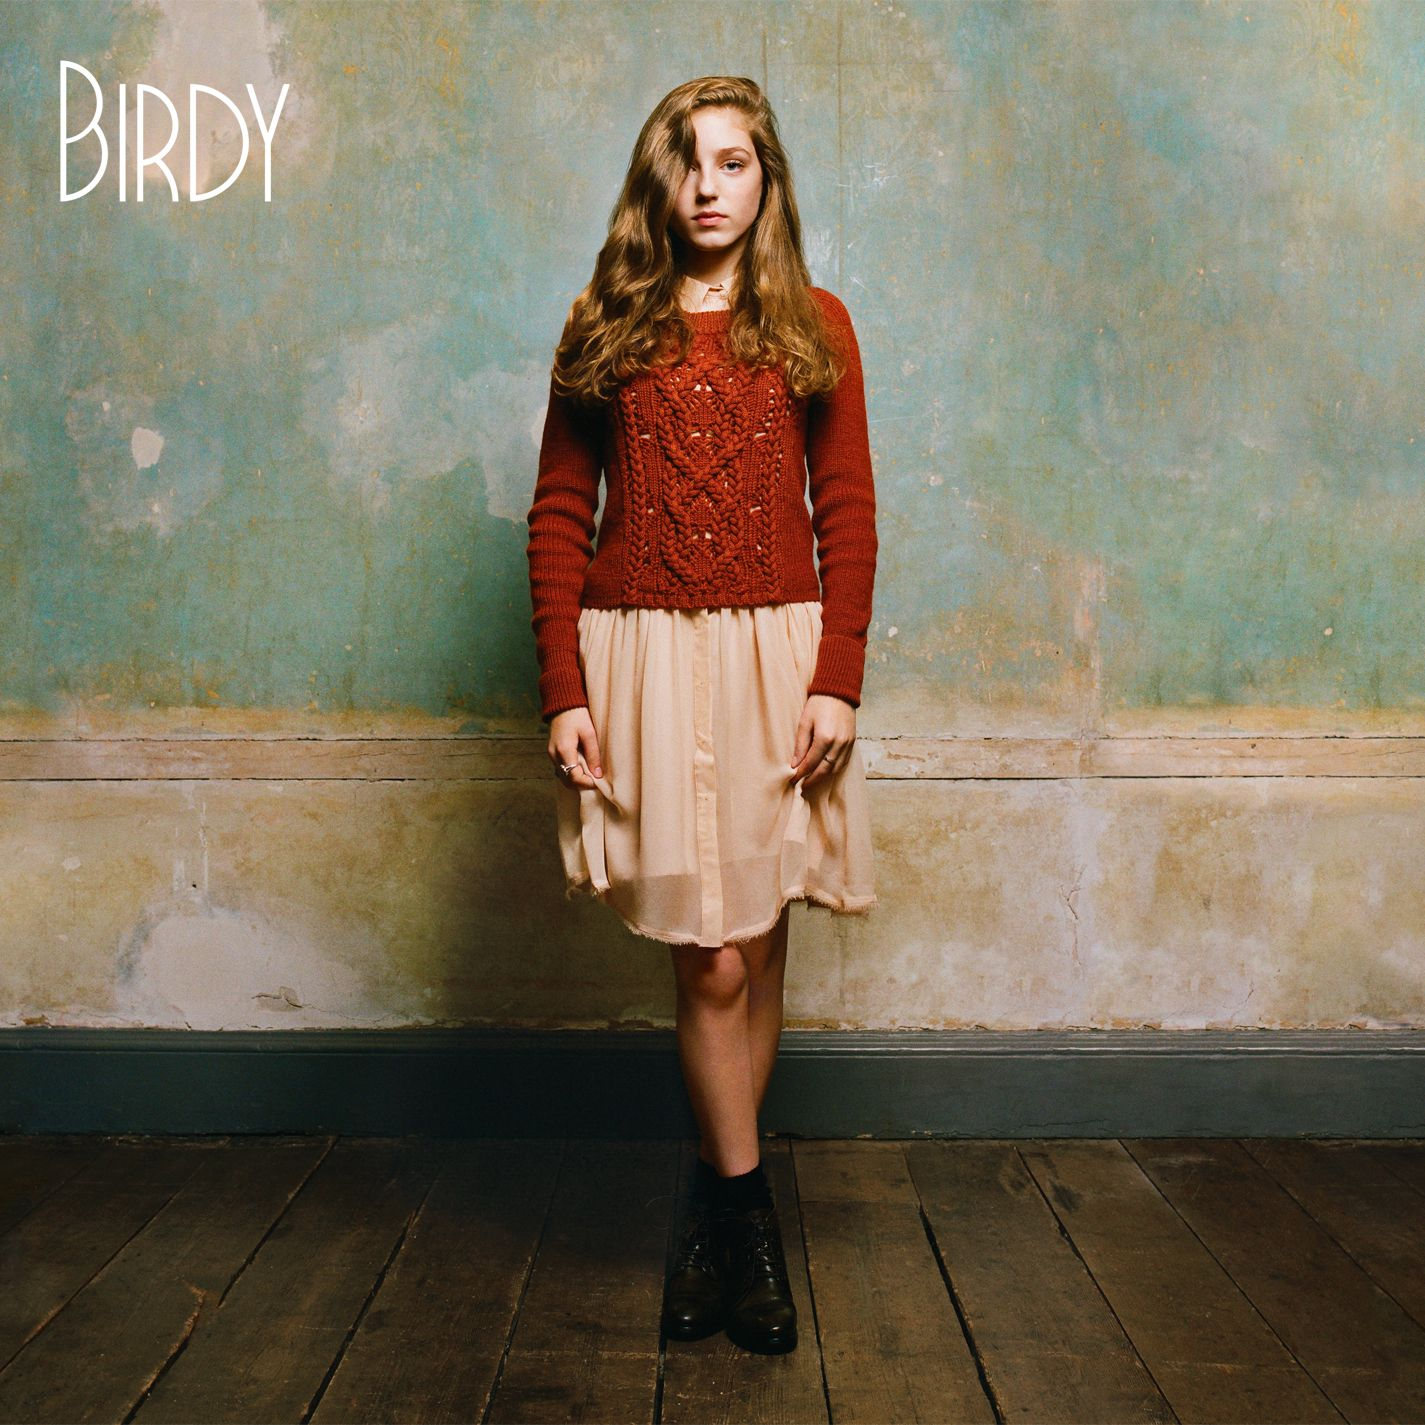 Birdy - Birdy album cover